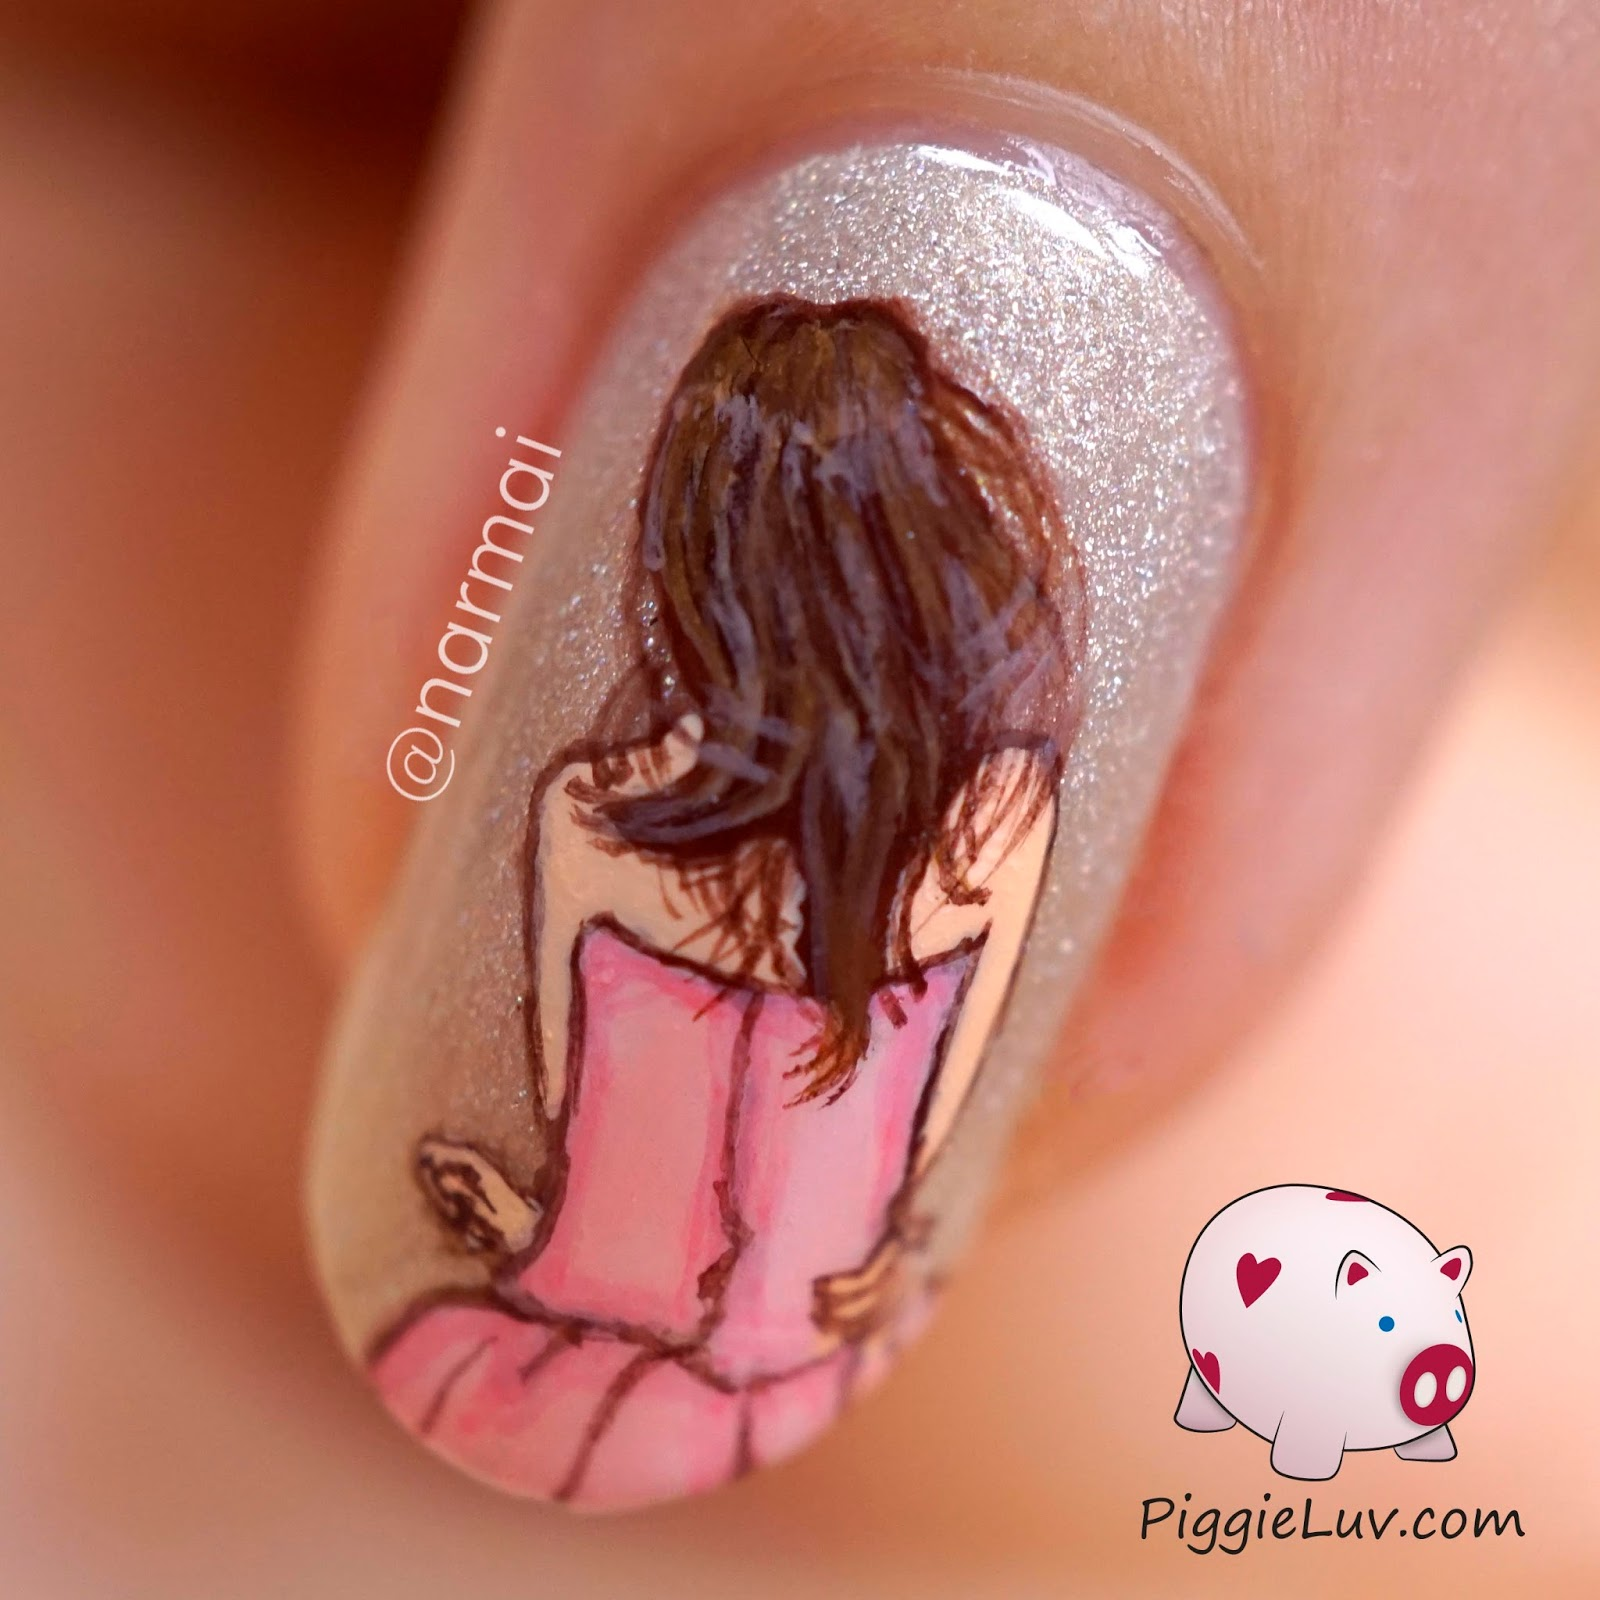 Piggieluv Happy Girls Are The Prettiest Freehand Nail Art